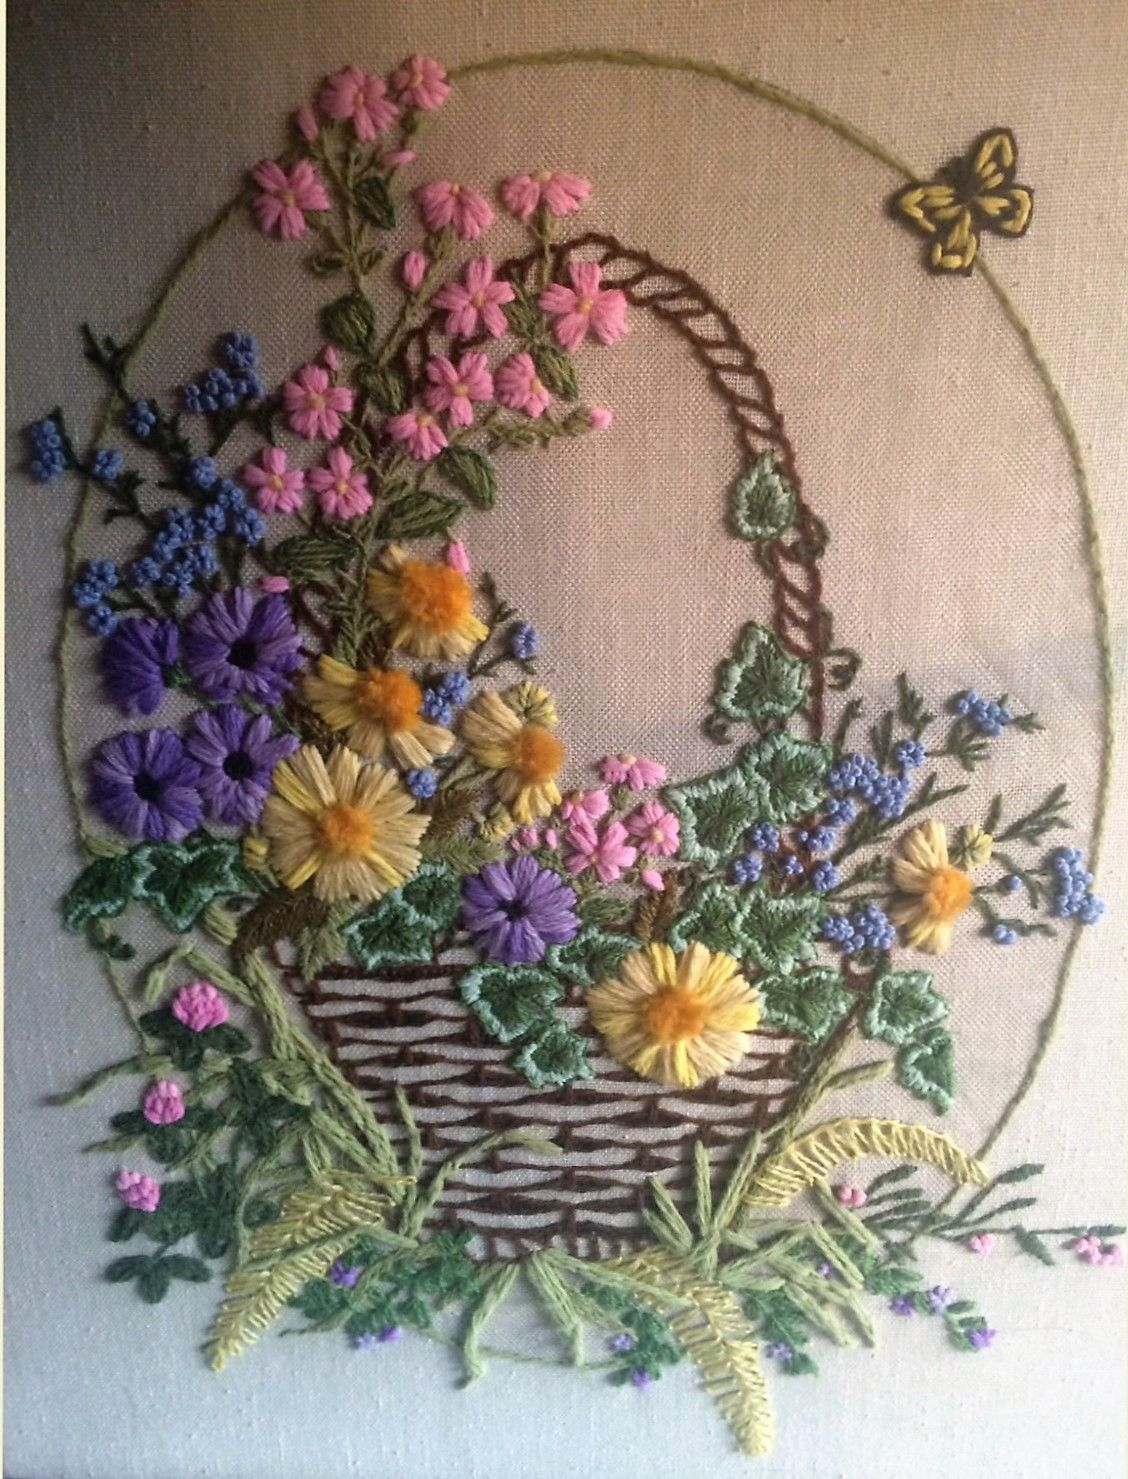 Pin by fisun evren on projects to try pinterest embroidery hand